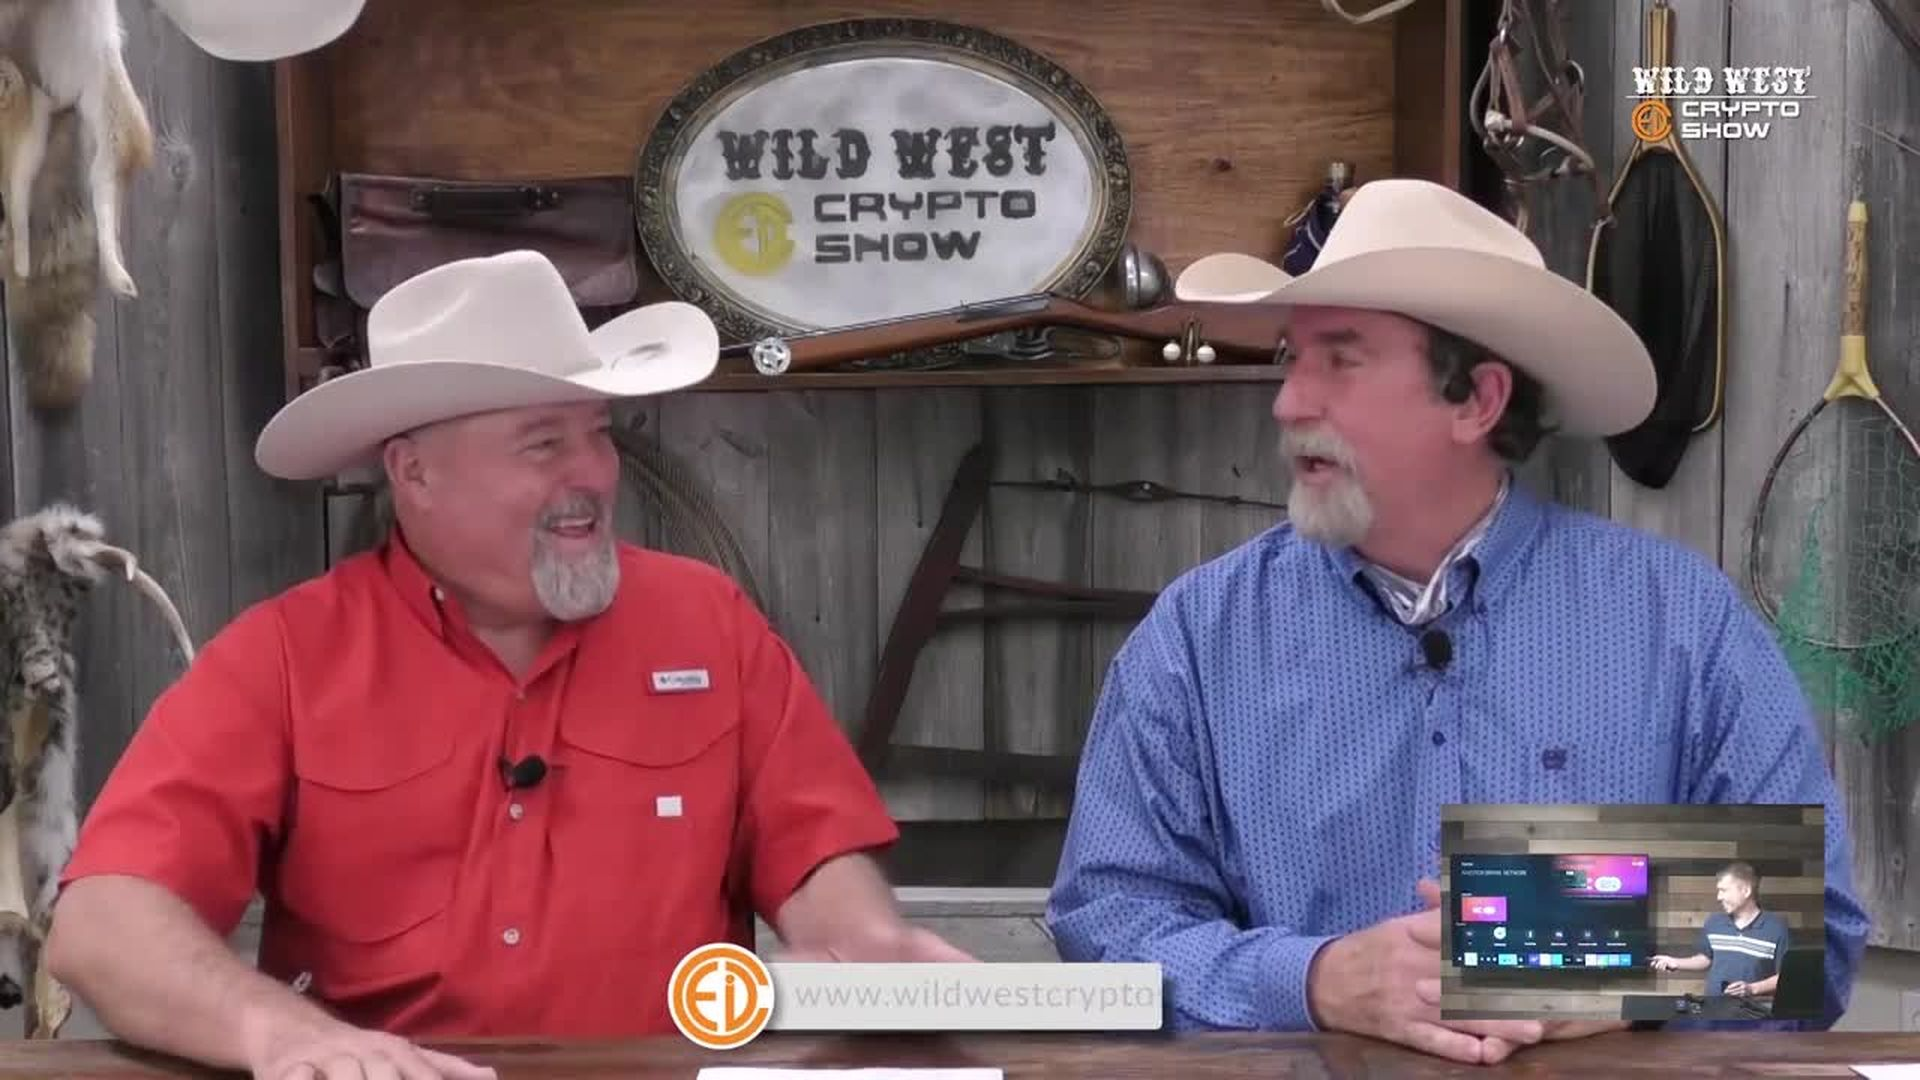 CryptoCurrencyWire Videos-The Wild West Crypto Show Introduces Faith-Based Amazon Competitor  CryptoCurrencyWire on The Wild West Crypto Show   Episode 119